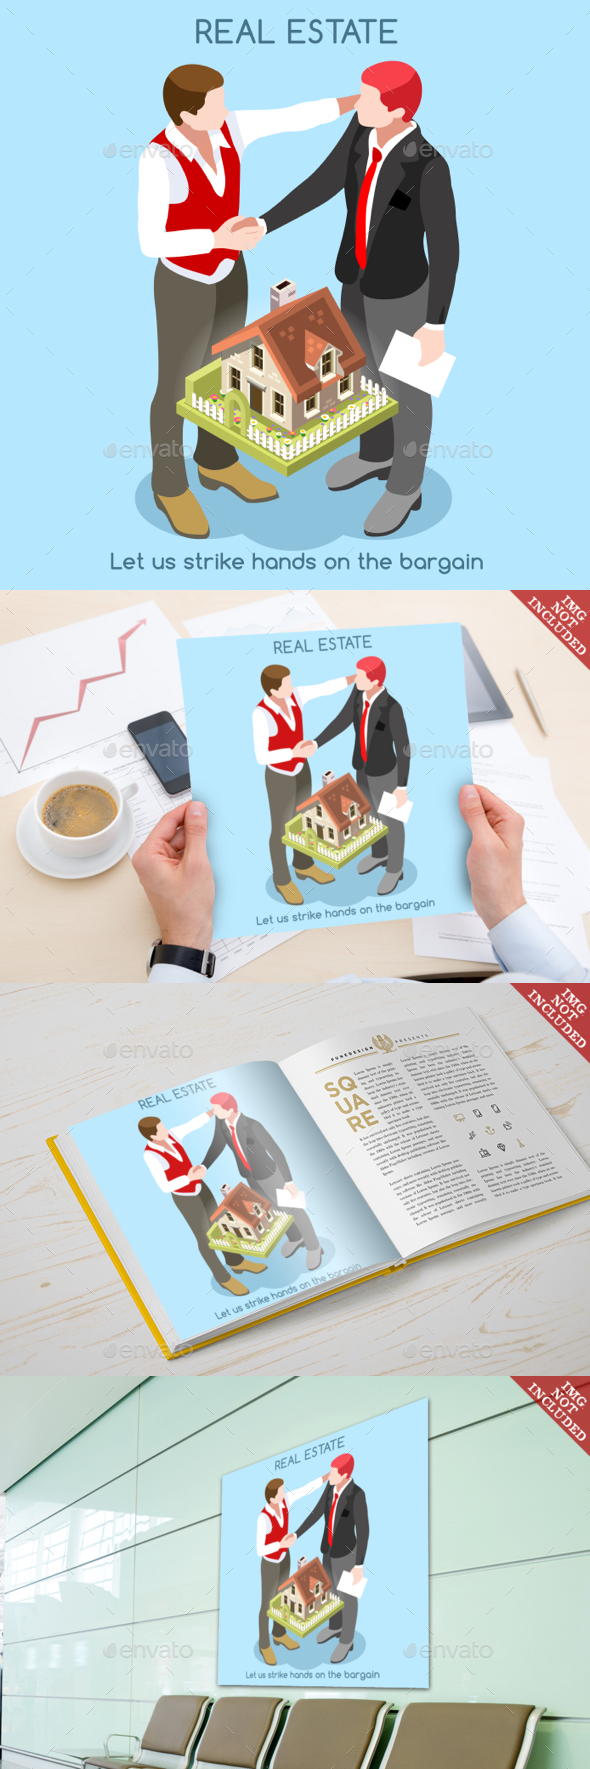 Real Estate 01 People Isometric - Concepts Business